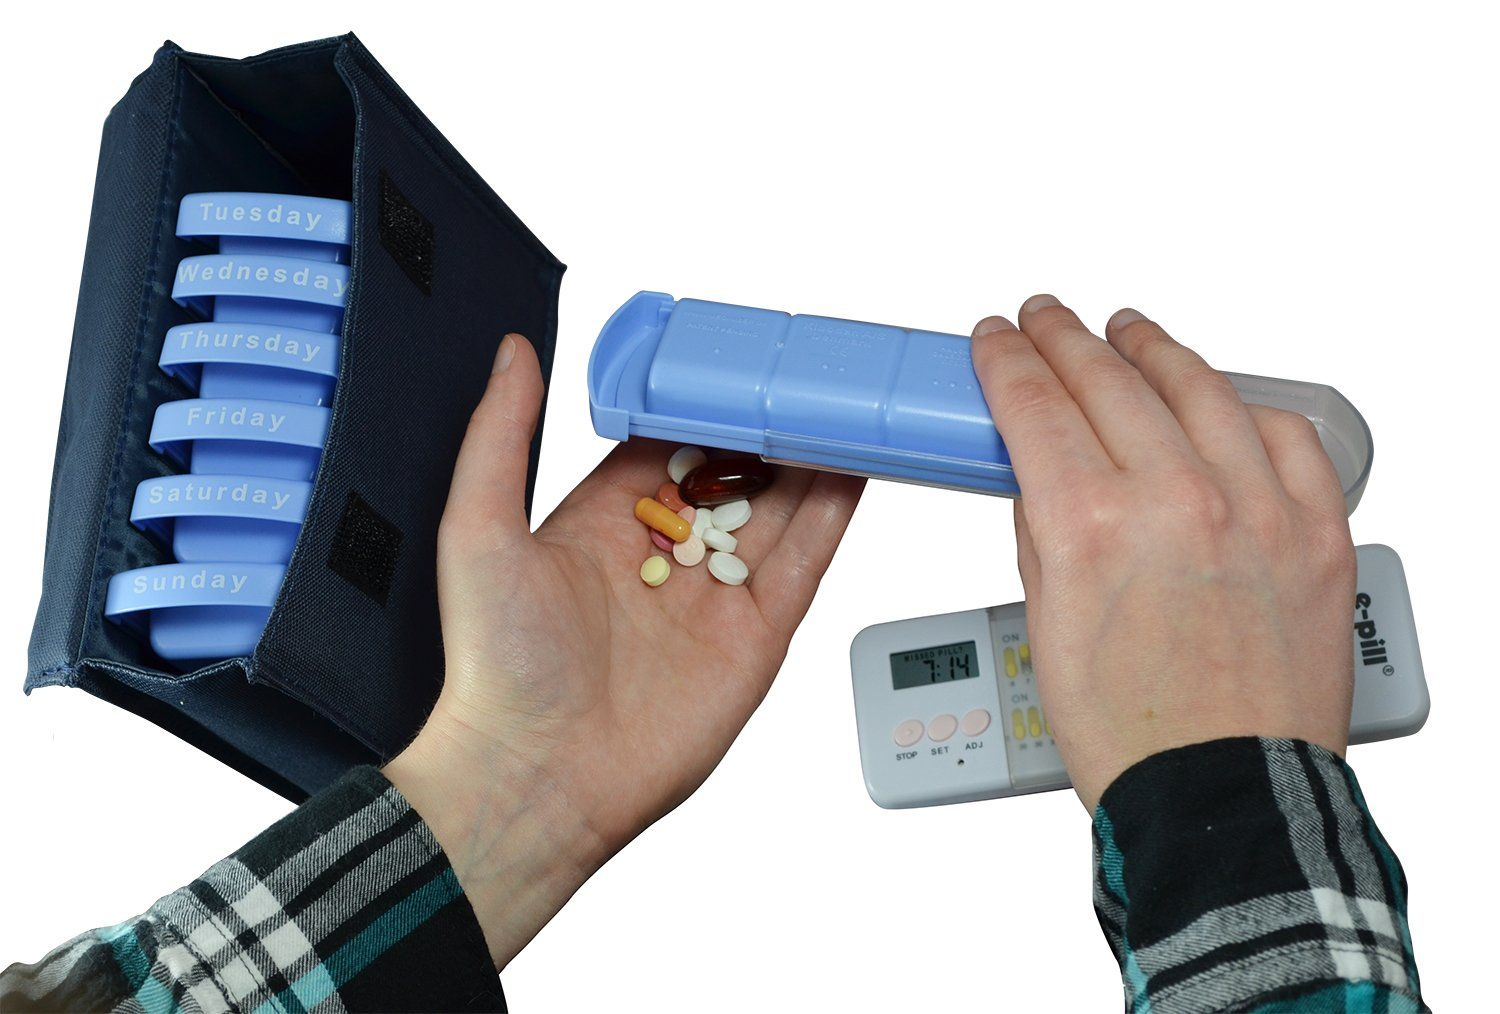 Amazon.com 7 Day x 4 Large Capacity Pill Box with Alarm Timer. Weekly Pill Box Organizer System for Medications Supplements and Vitamins.  sc 1 st  Amazon.com & Amazon.com: 7 Day x 4 Large Capacity Pill Box with Alarm Timer ... Aboutintivar.Com